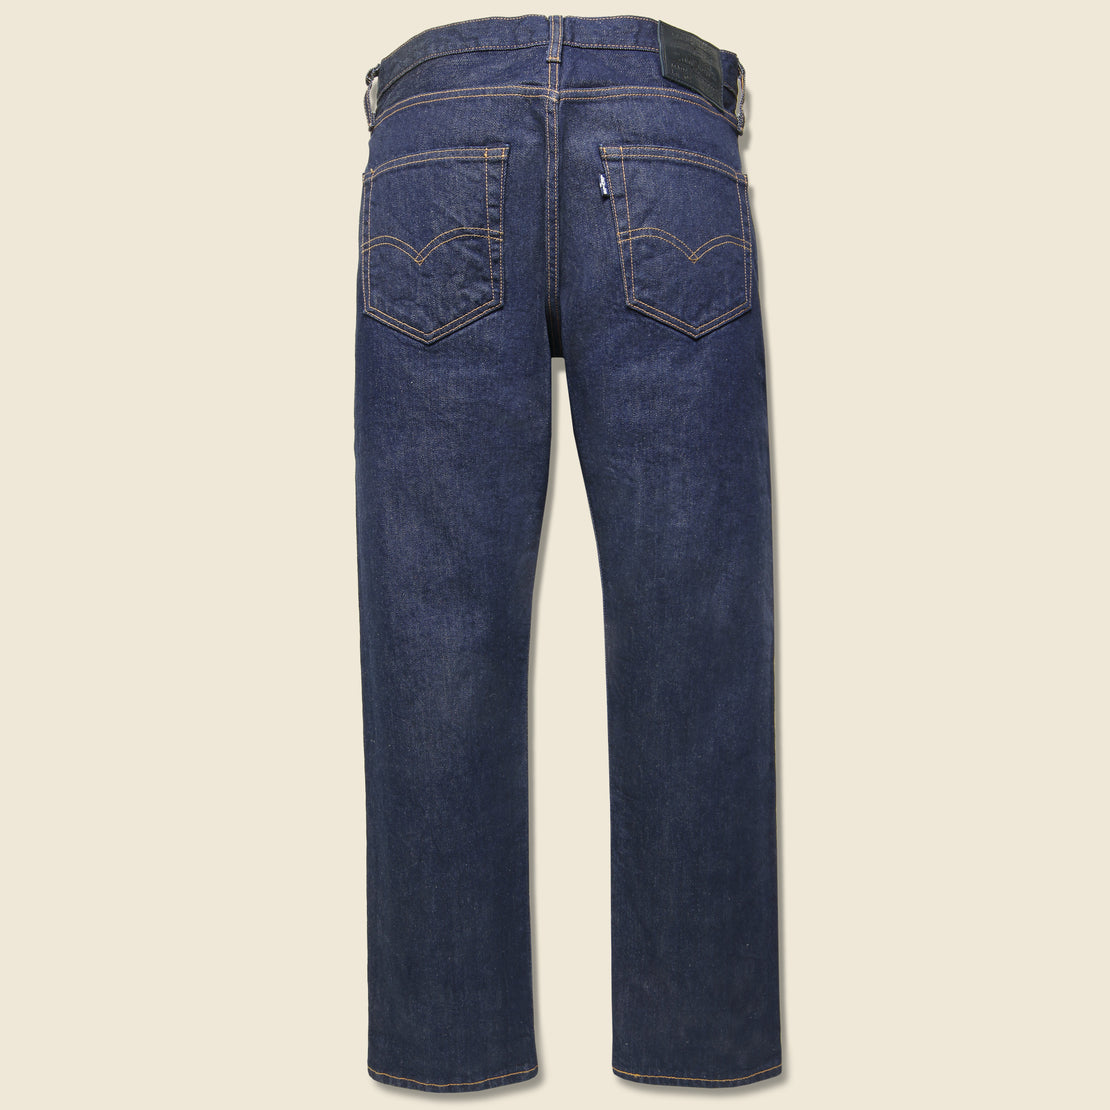 501 Original Fit Jean - Rinse Stretch